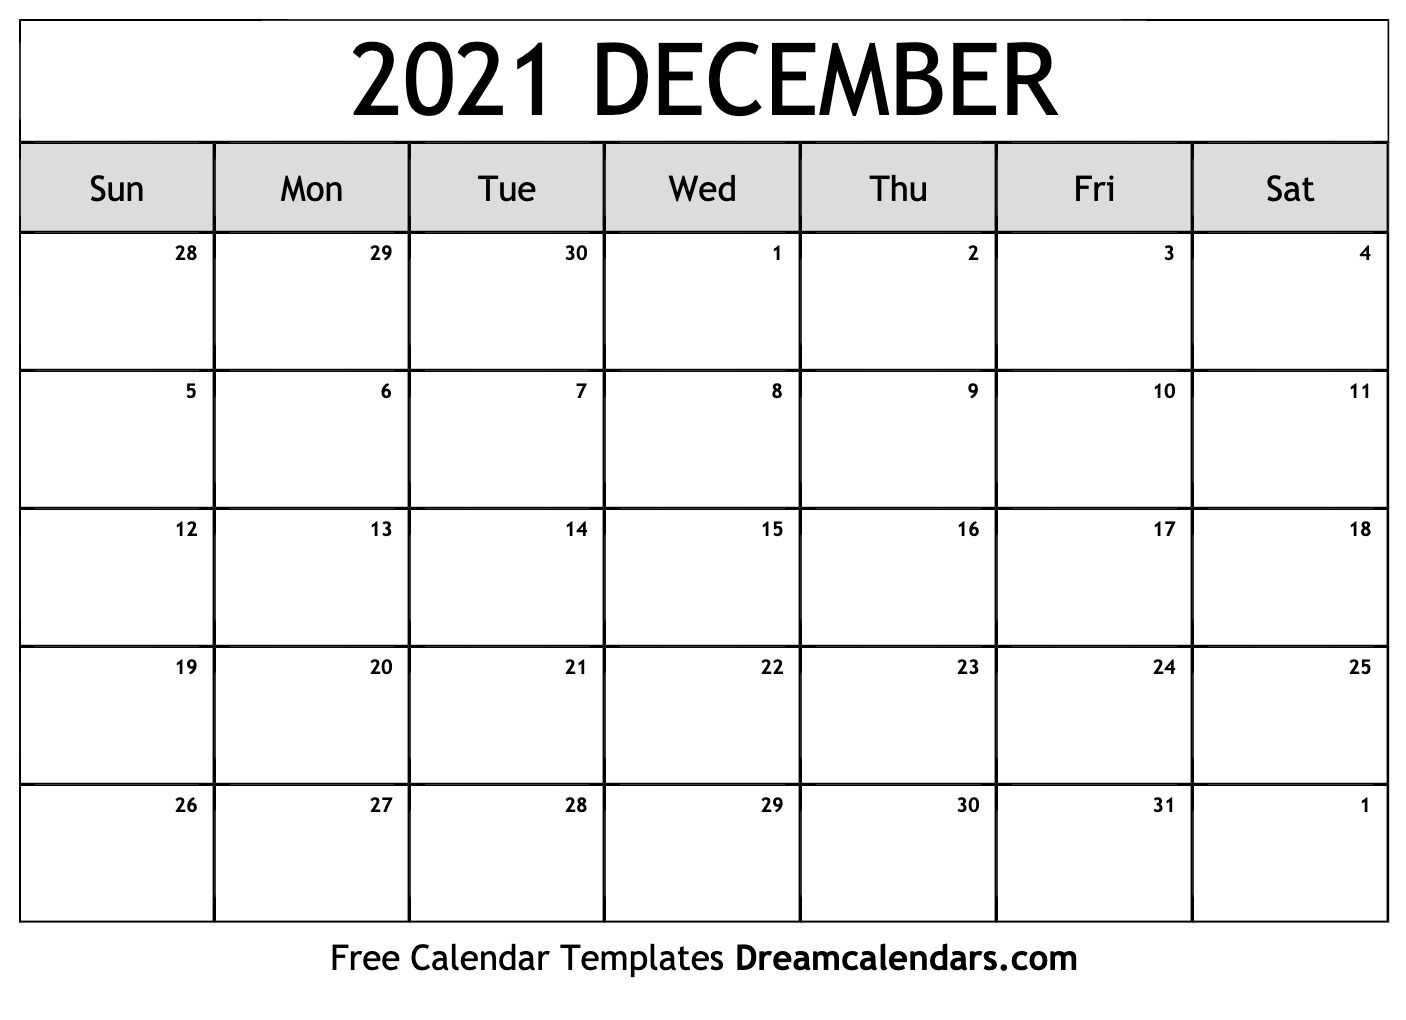 December 2021 Calendar. View the free printable monthly December